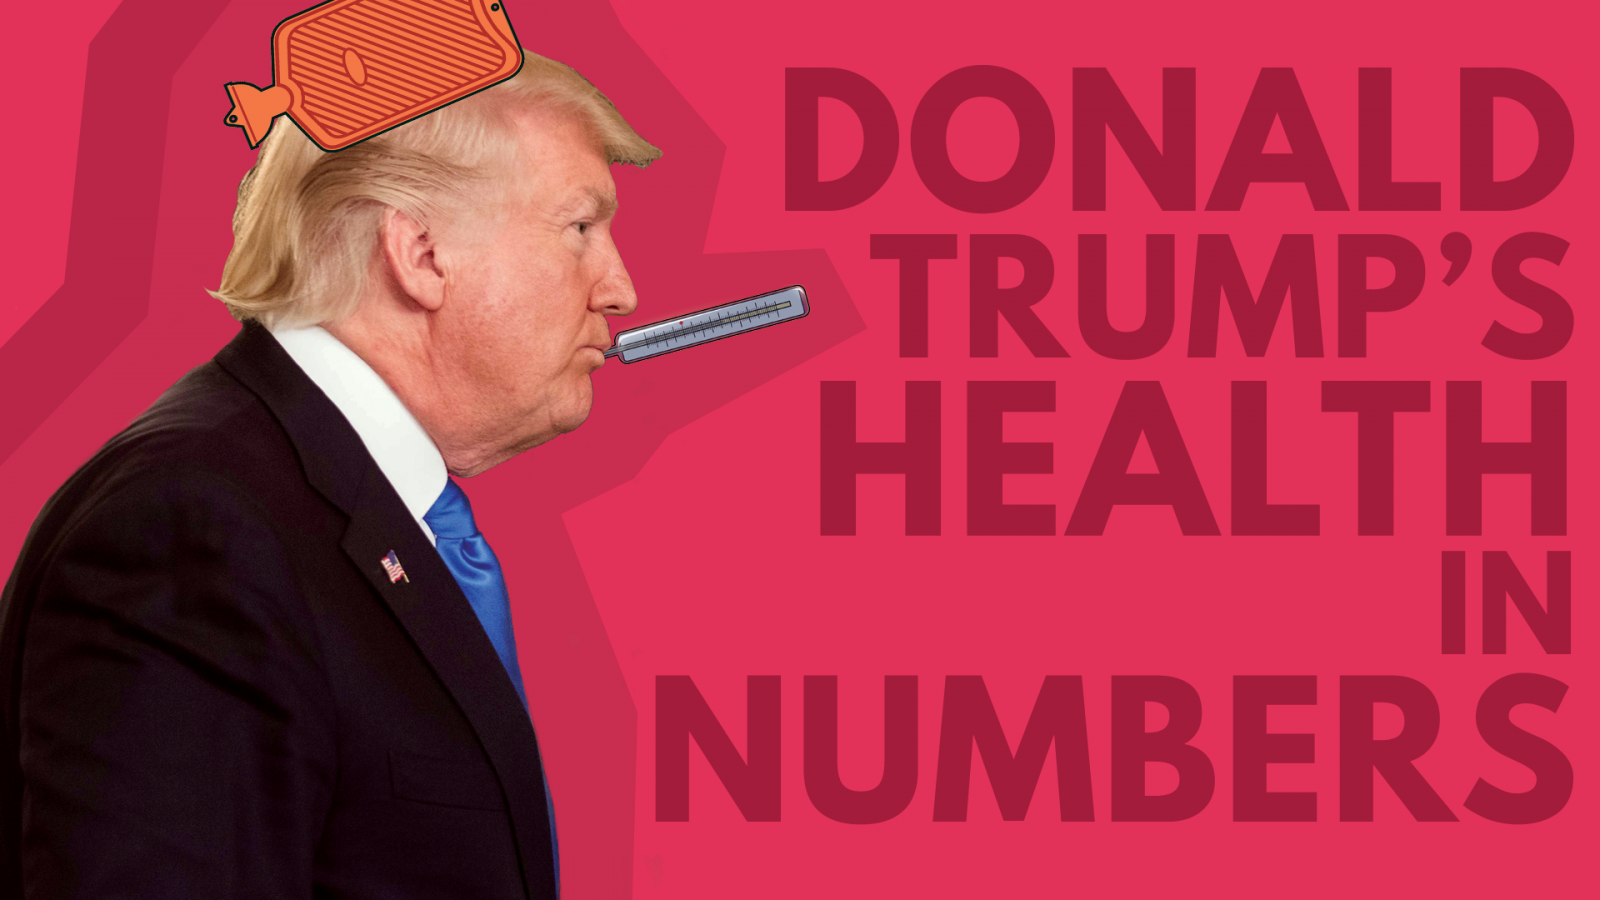 Donald Trump's health in numbers